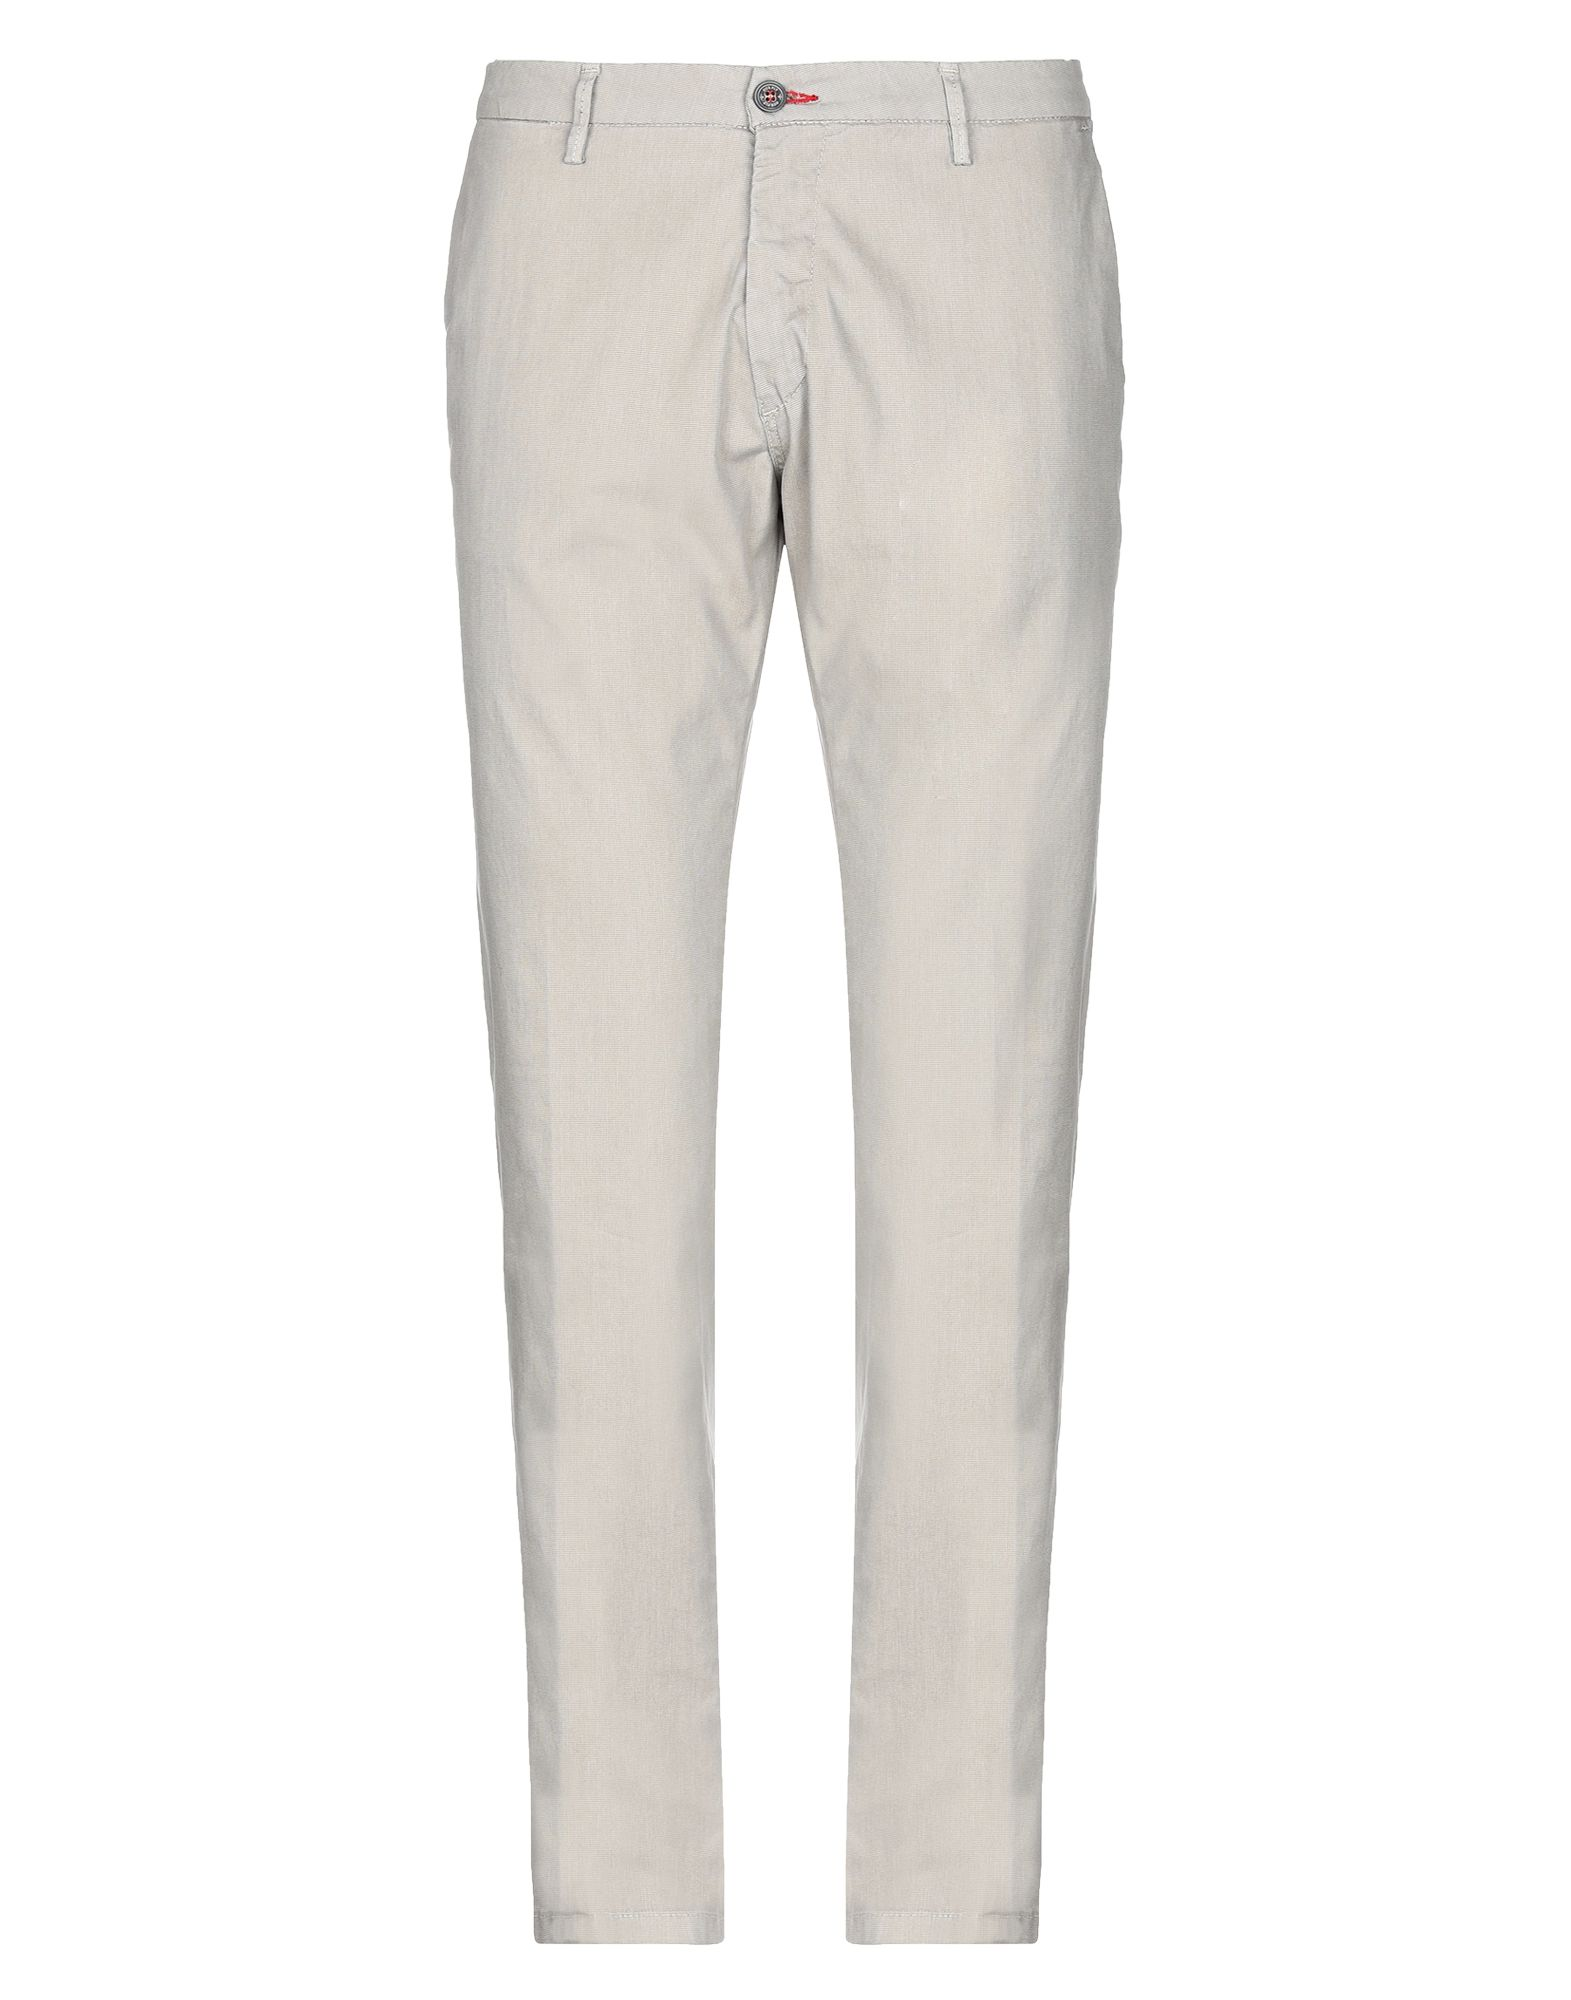 OUR FLY Повседневные брюки tapered fit zip fly basic jeans